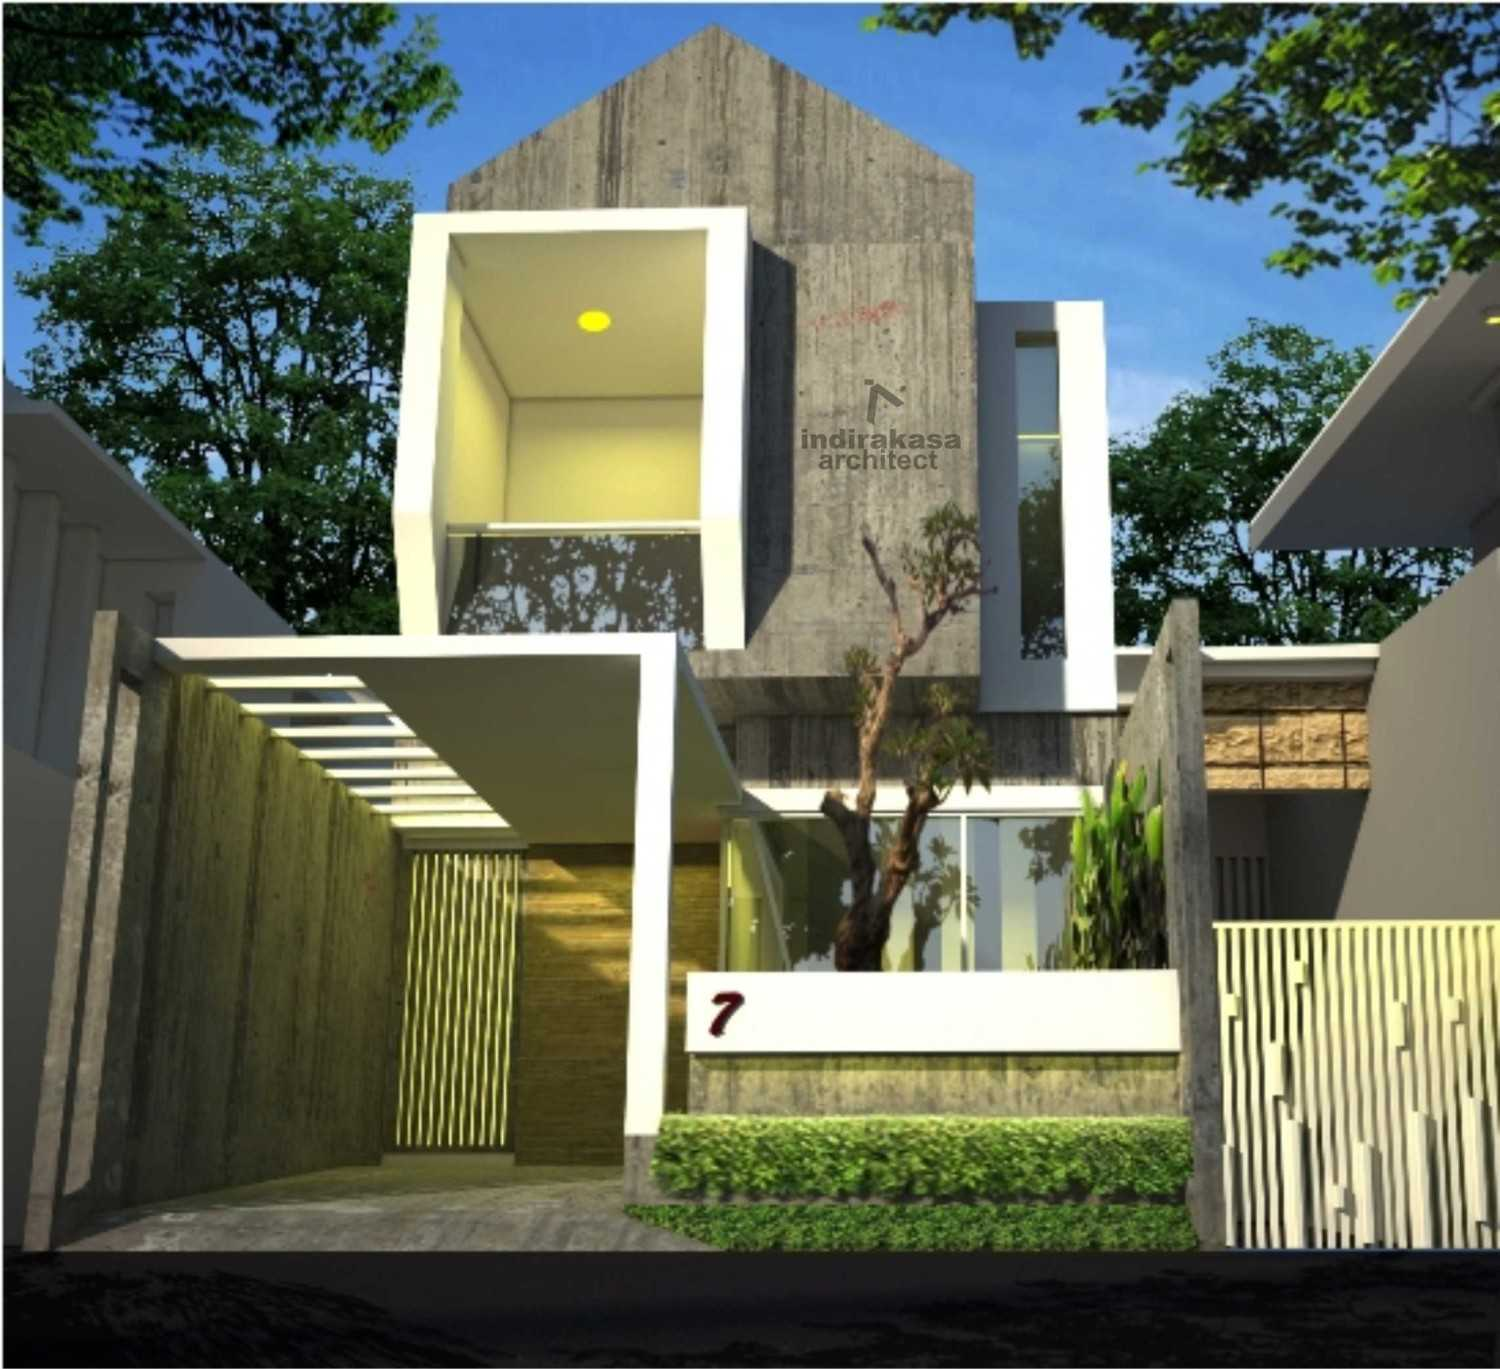 Jasa Design and Build Aditya Wijaya / Studio indirakasa di Bangkalan